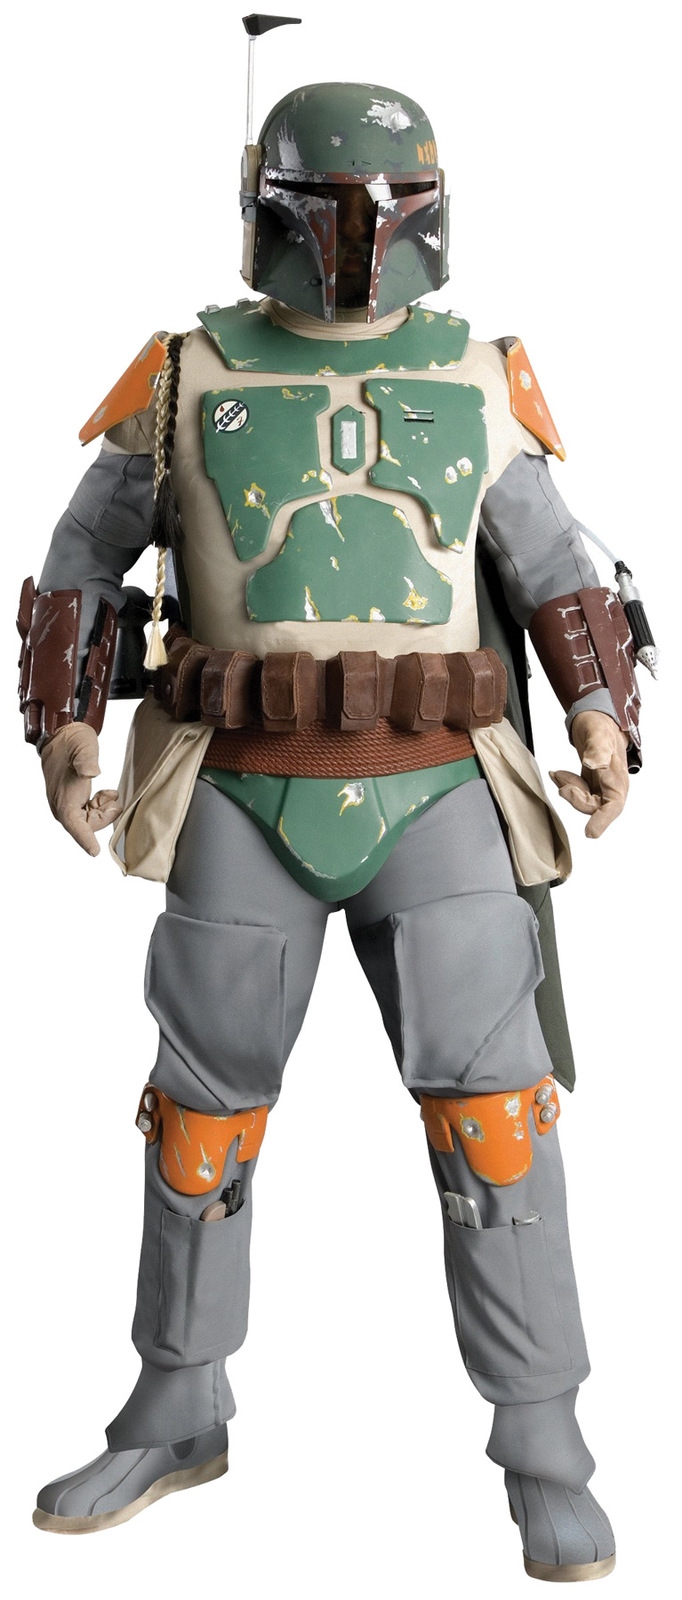 Primary image for Authentic Supreme SUPER EDITION BOBA FETT Movie Costume Star wars Licensed XL